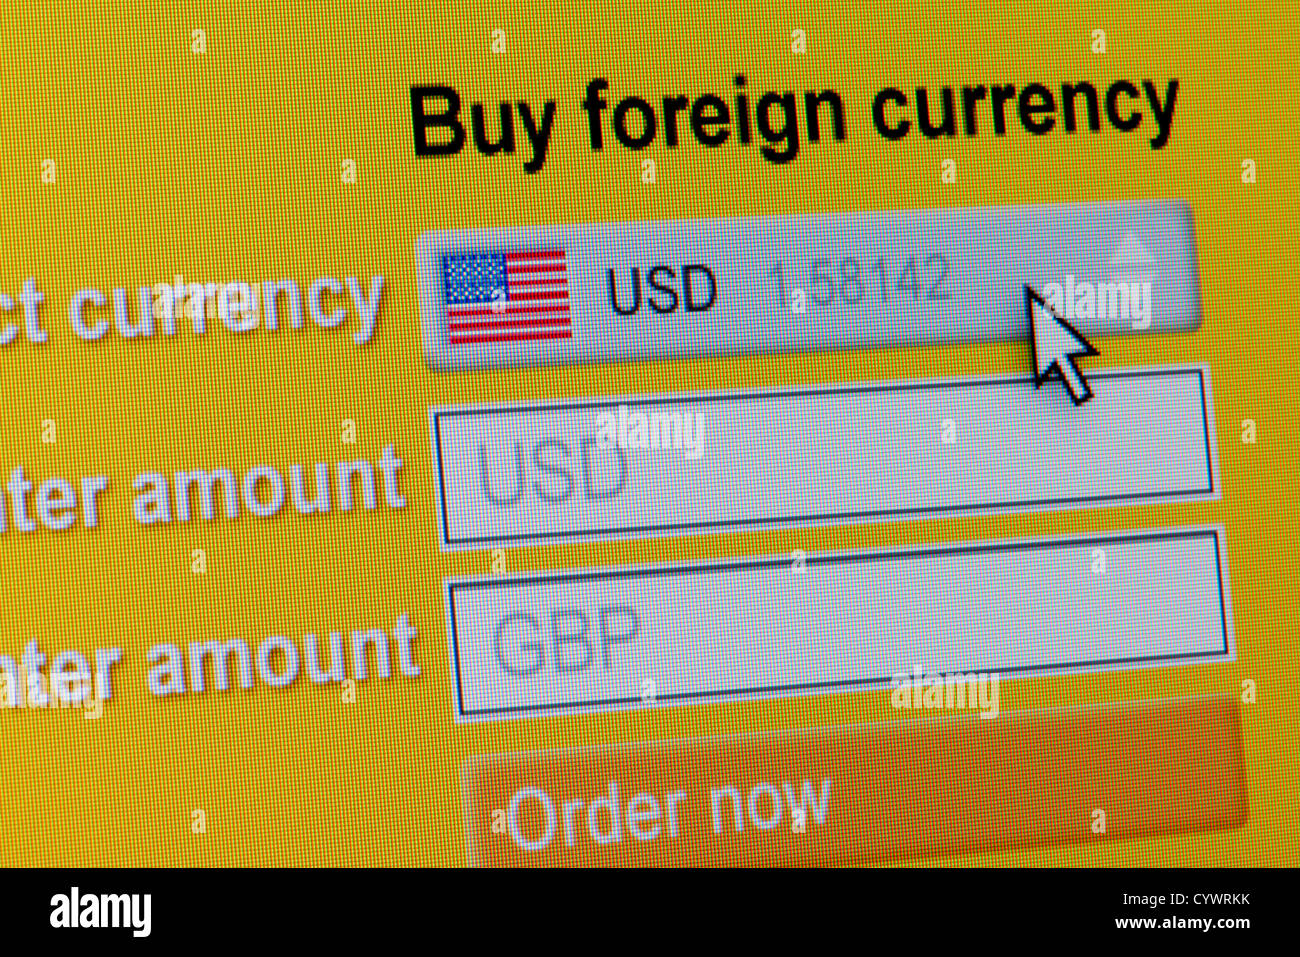 Close up of a fictional website inviting users to buy foreign currency, in this instance US Dollars. - Stock Image